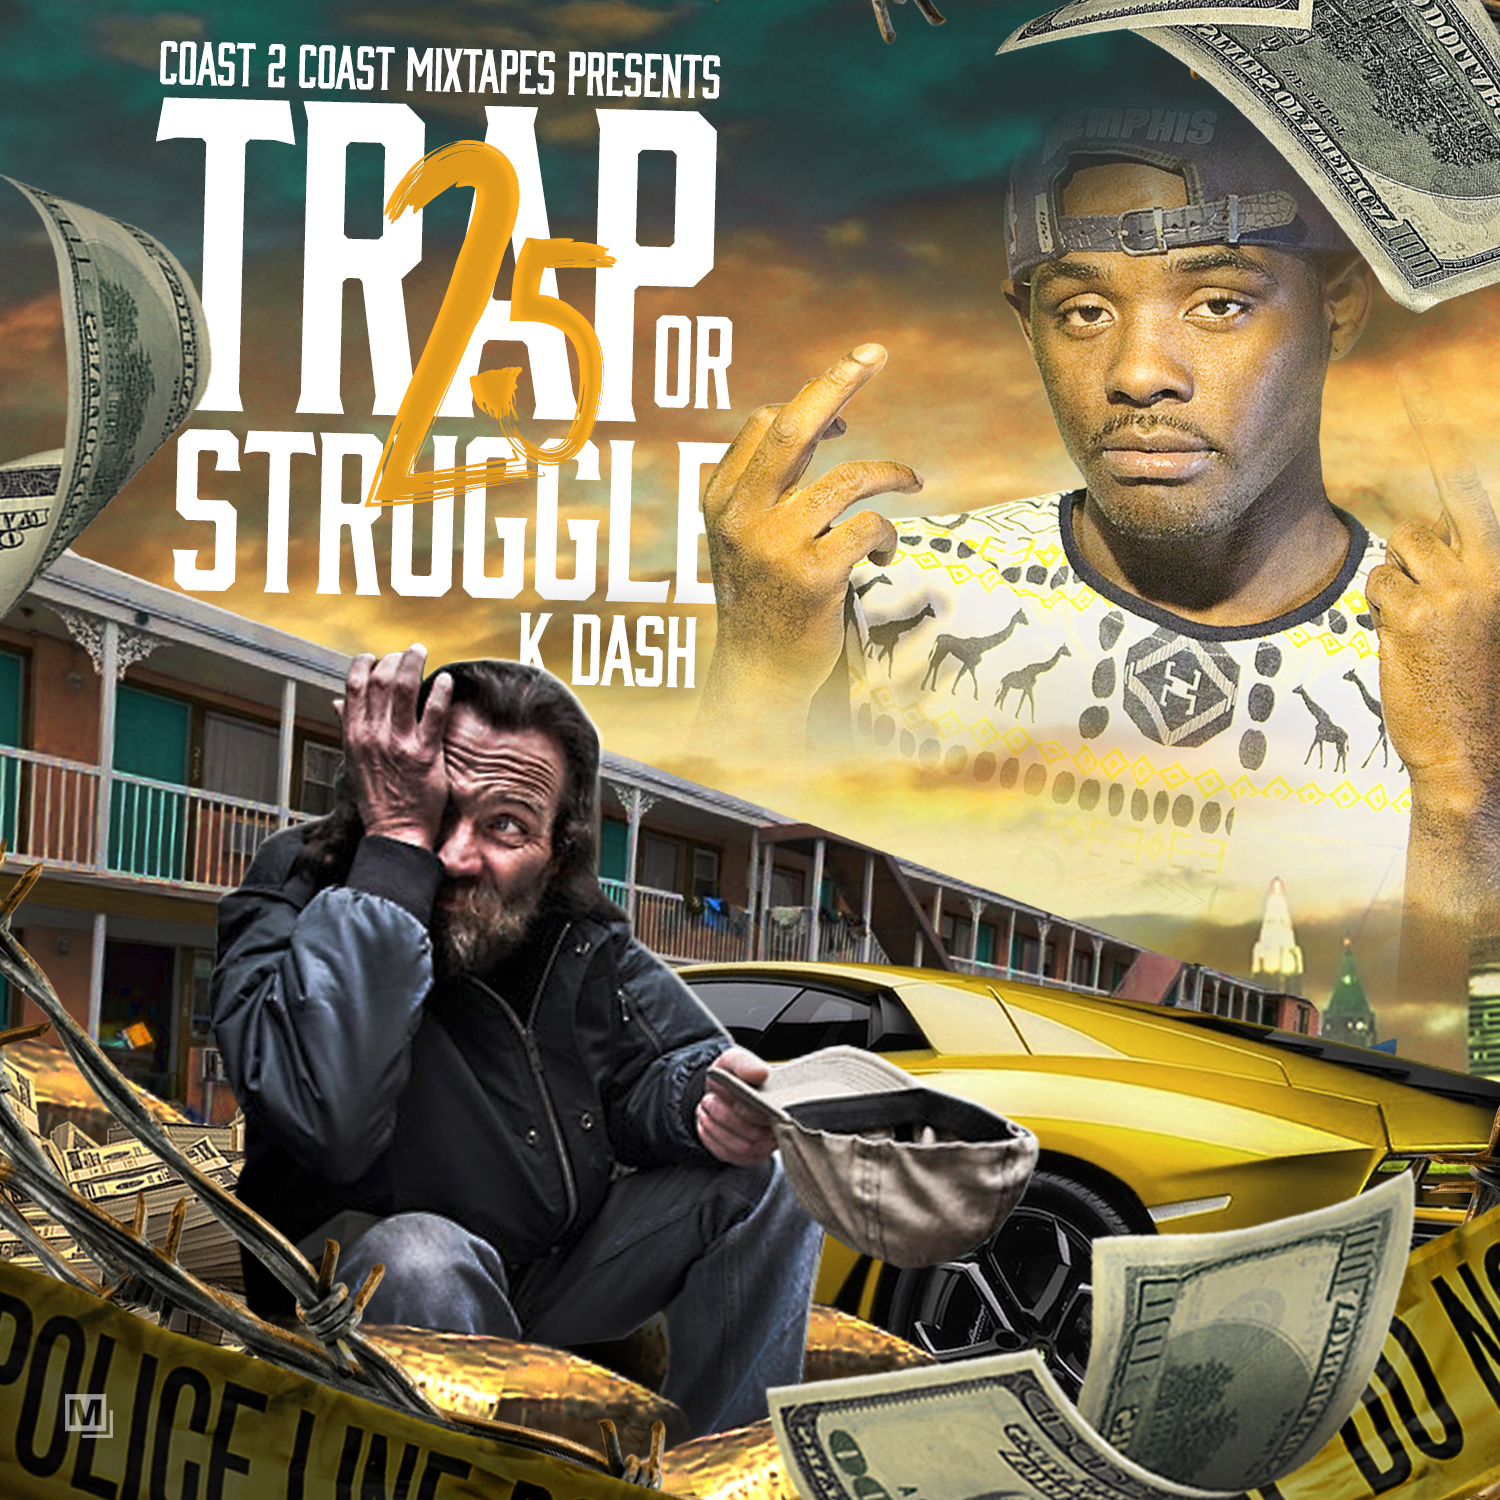 chicago recording artist k dash releases new mixtape trap or